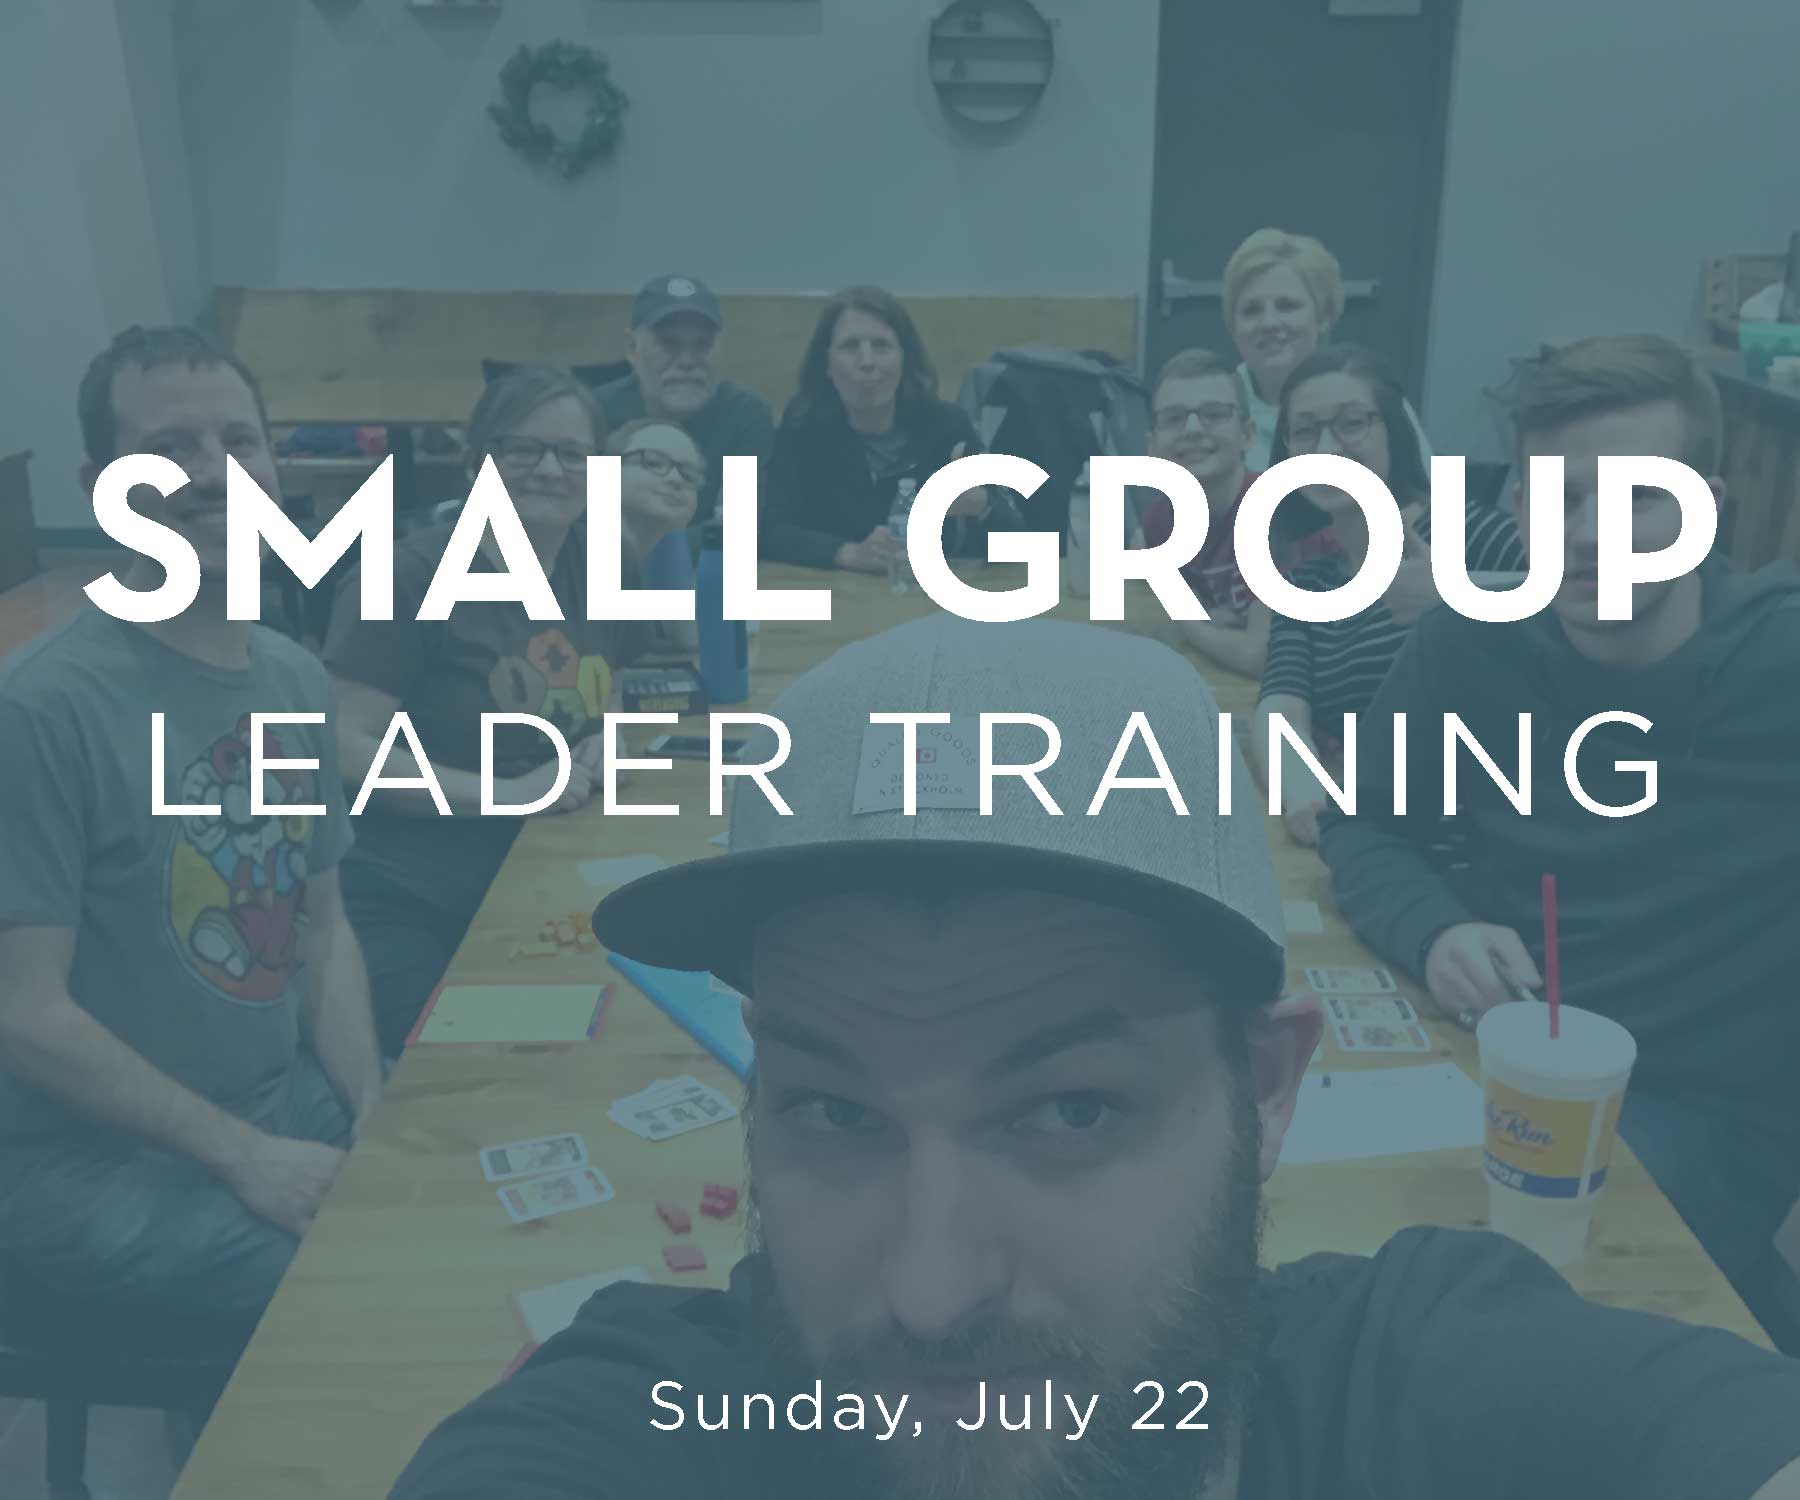 Small group leader training reg july 22